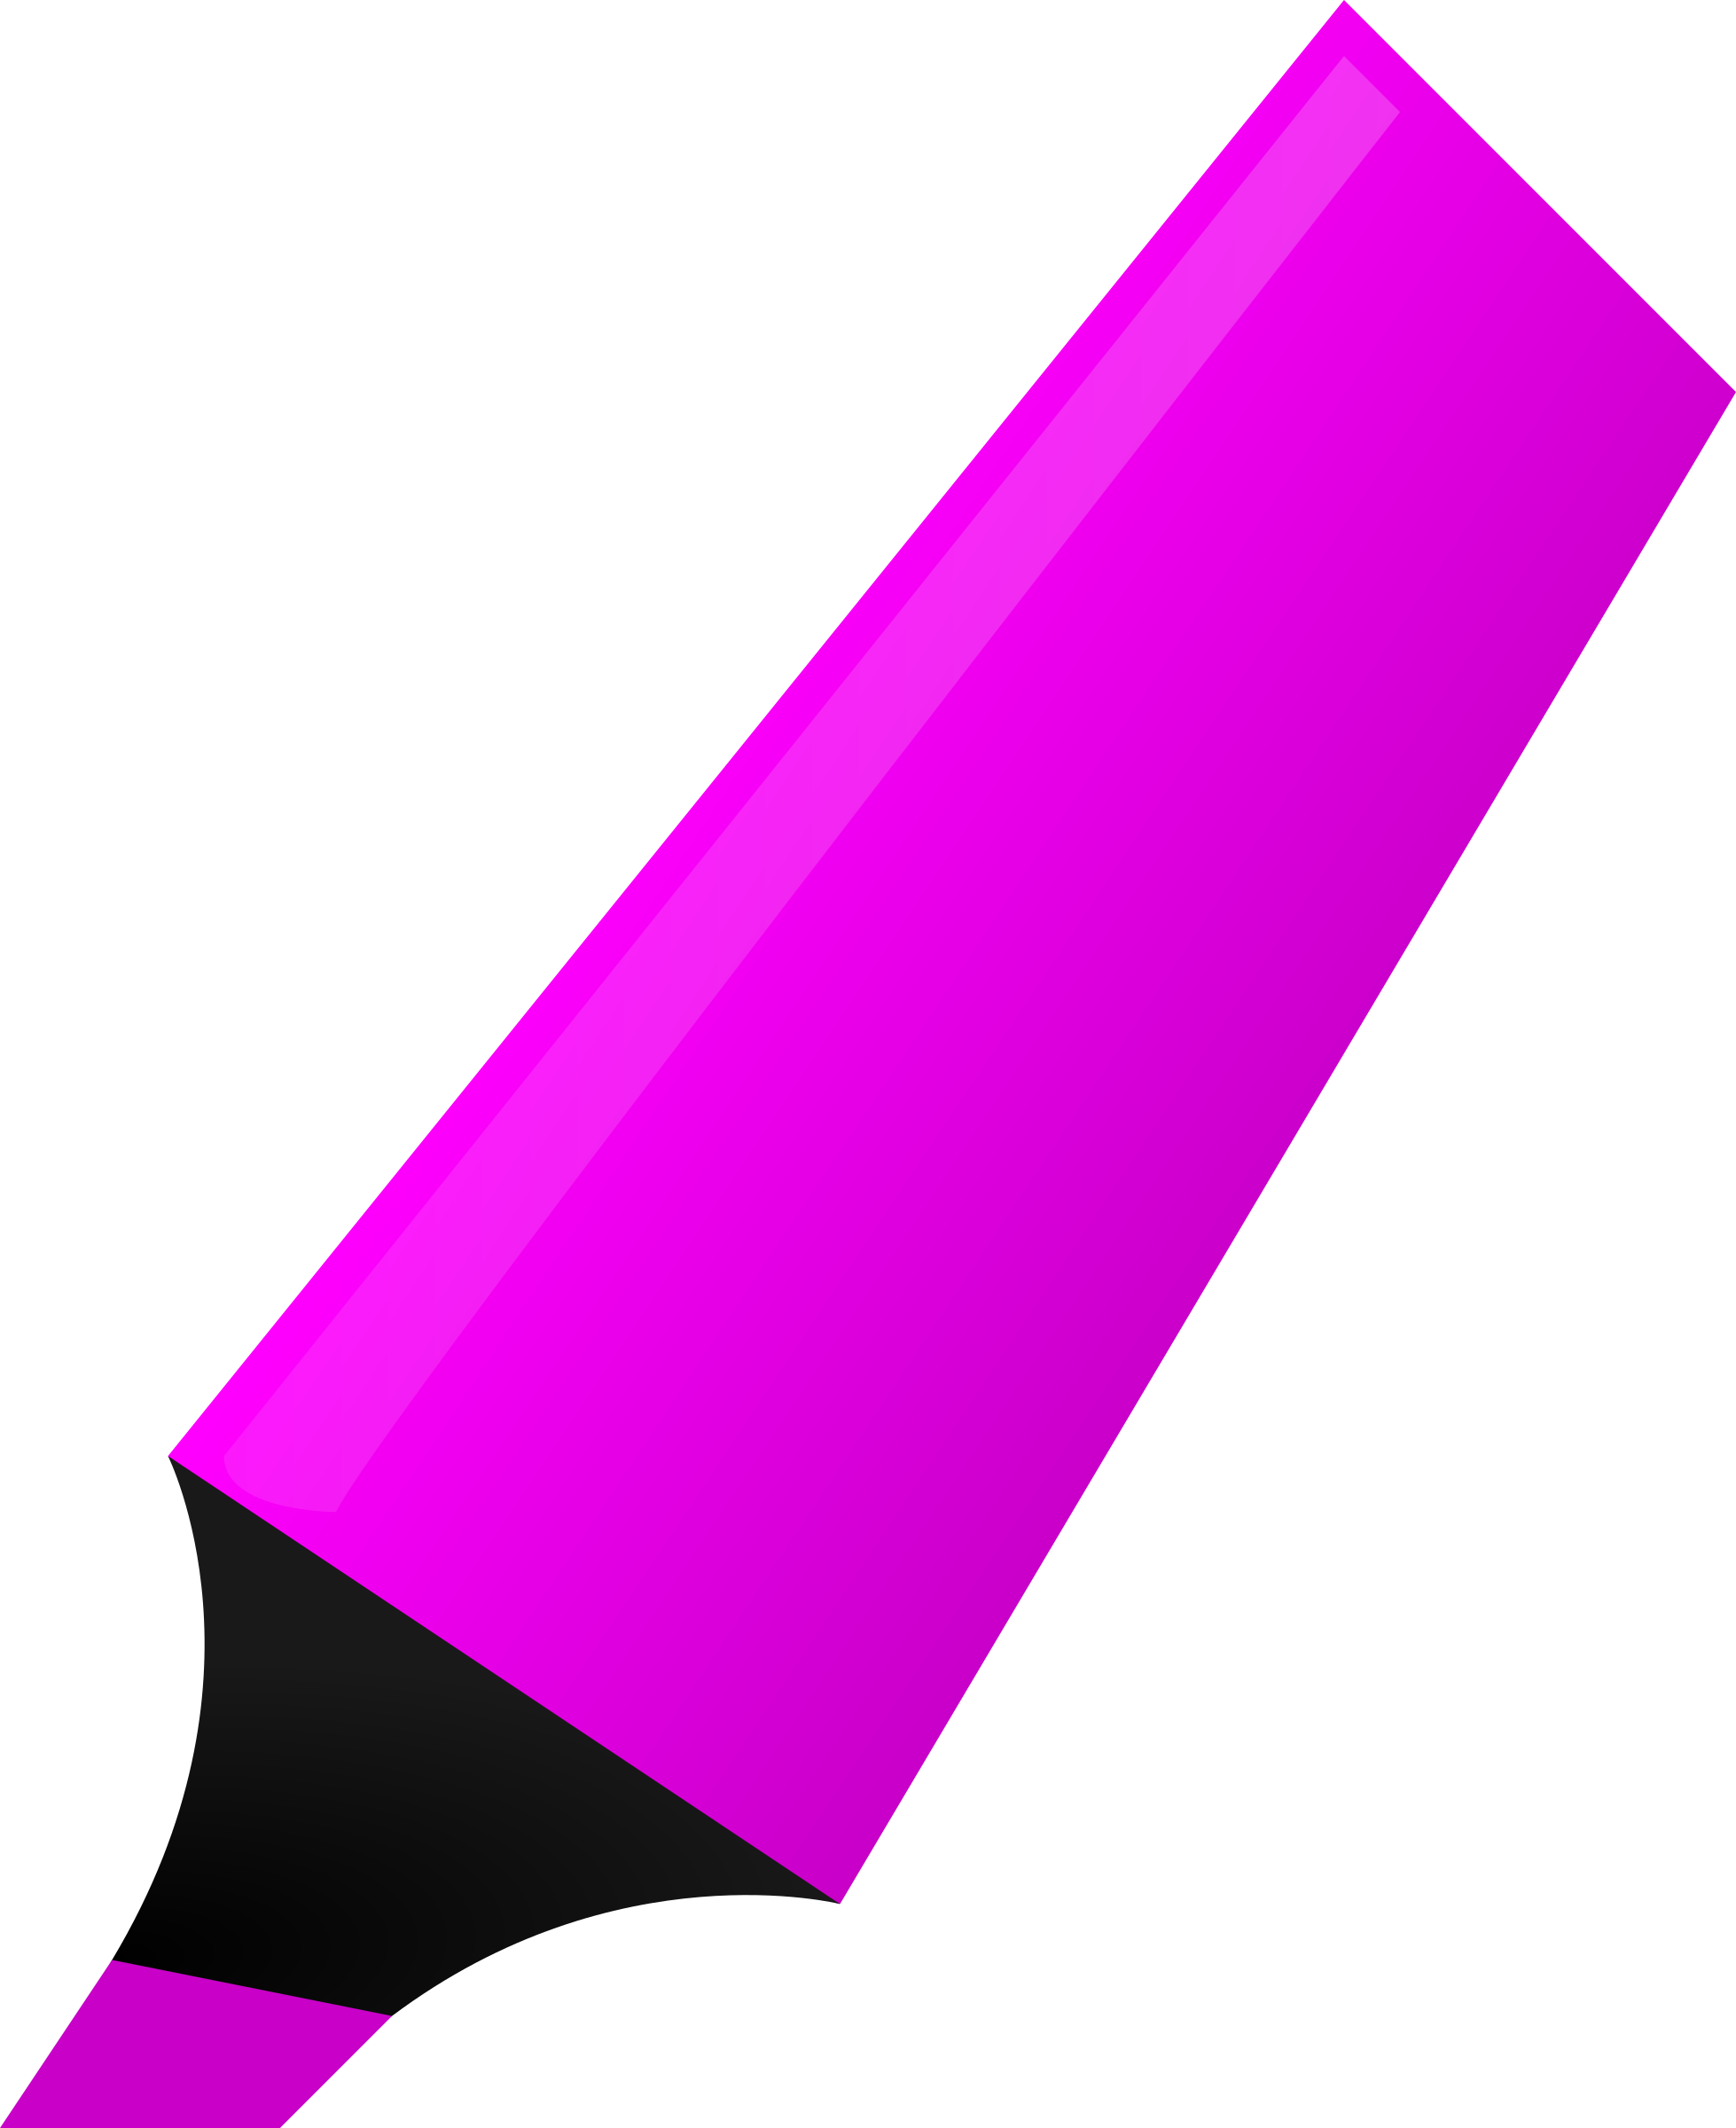 Free Highlighter Cliparts, Download Free Clip Art, Free Clip.